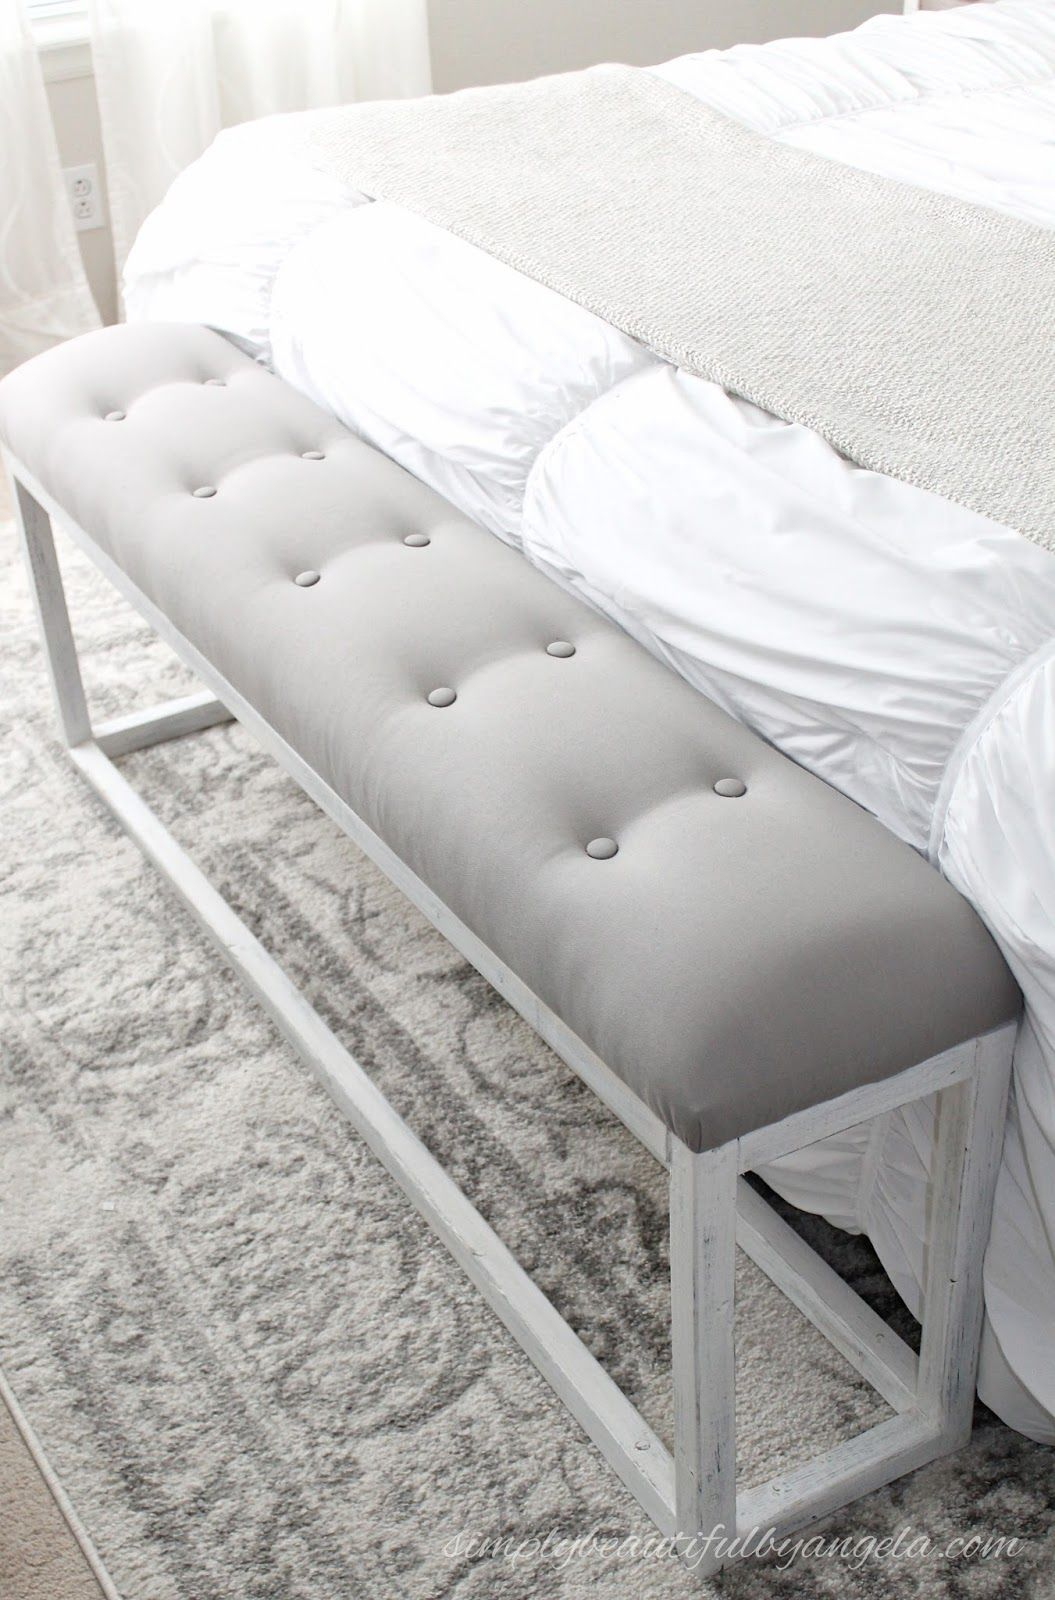 Diy Simple End Of Bed Bench Bedroom Bench Diy Master Bedroom Diy